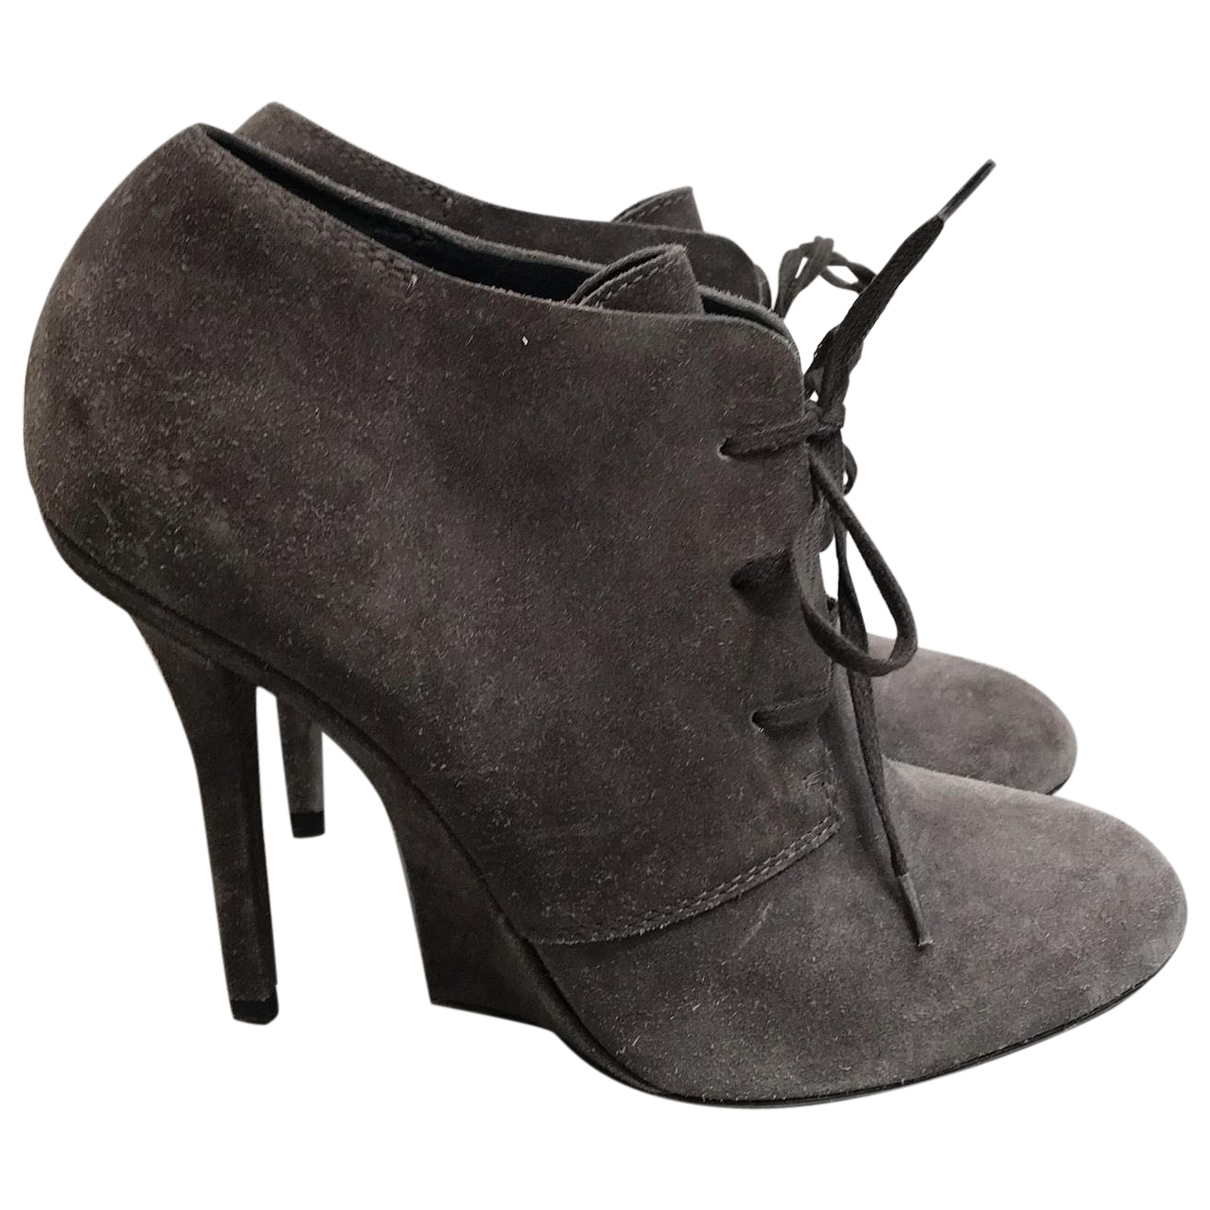 Yves Saint Laurent \N Grey Suede Ankle boots for Women 38 EU